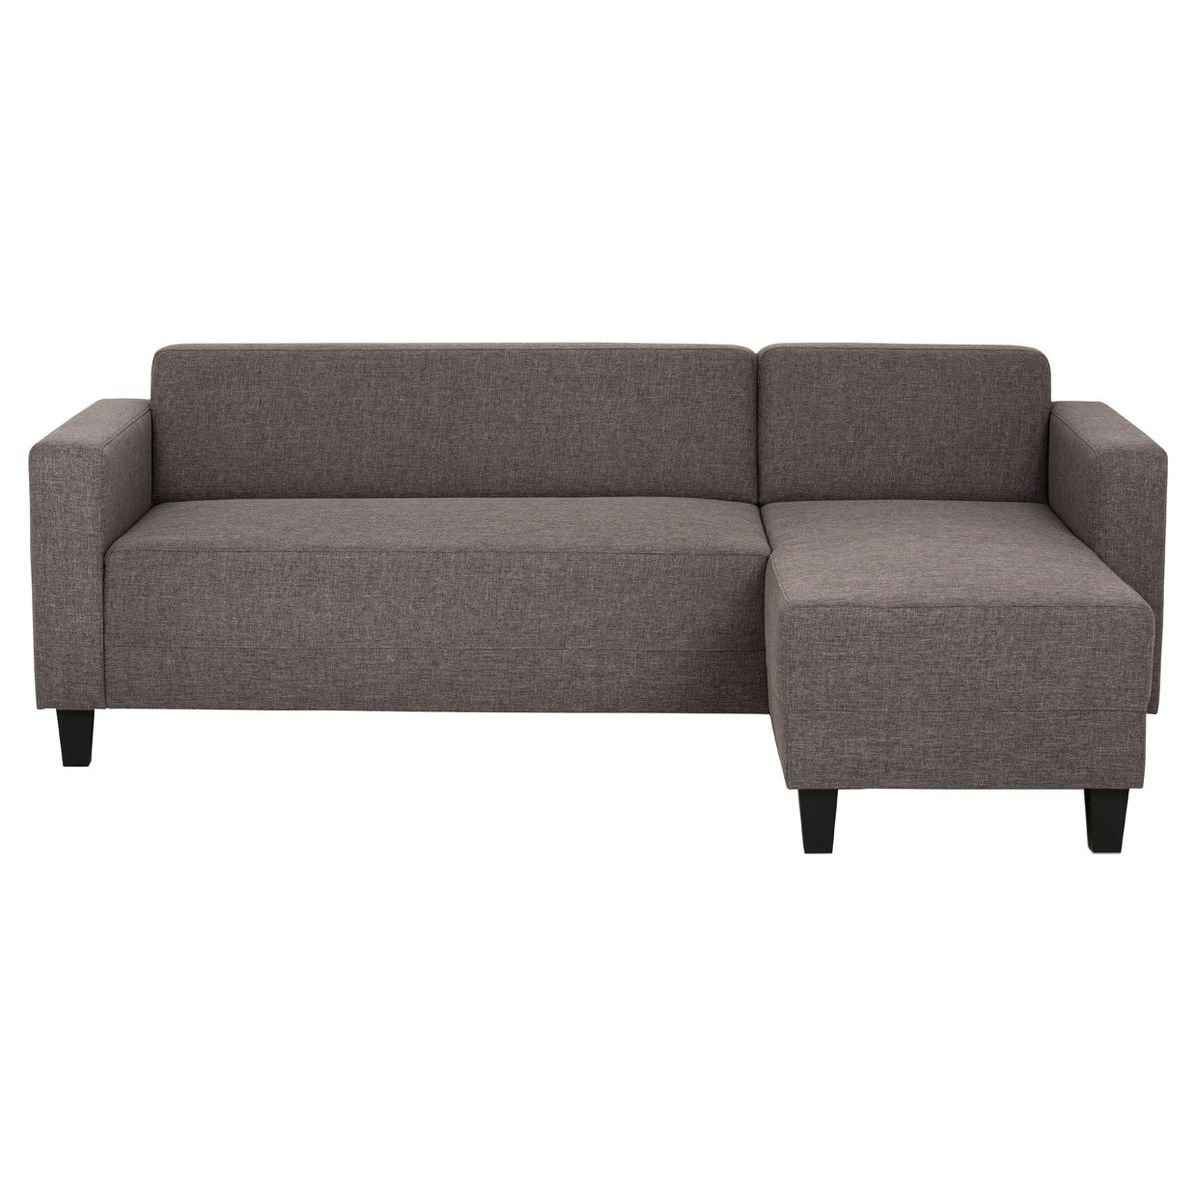 Sof s chaise longue el corte ingl s for Sofas de dos plazas